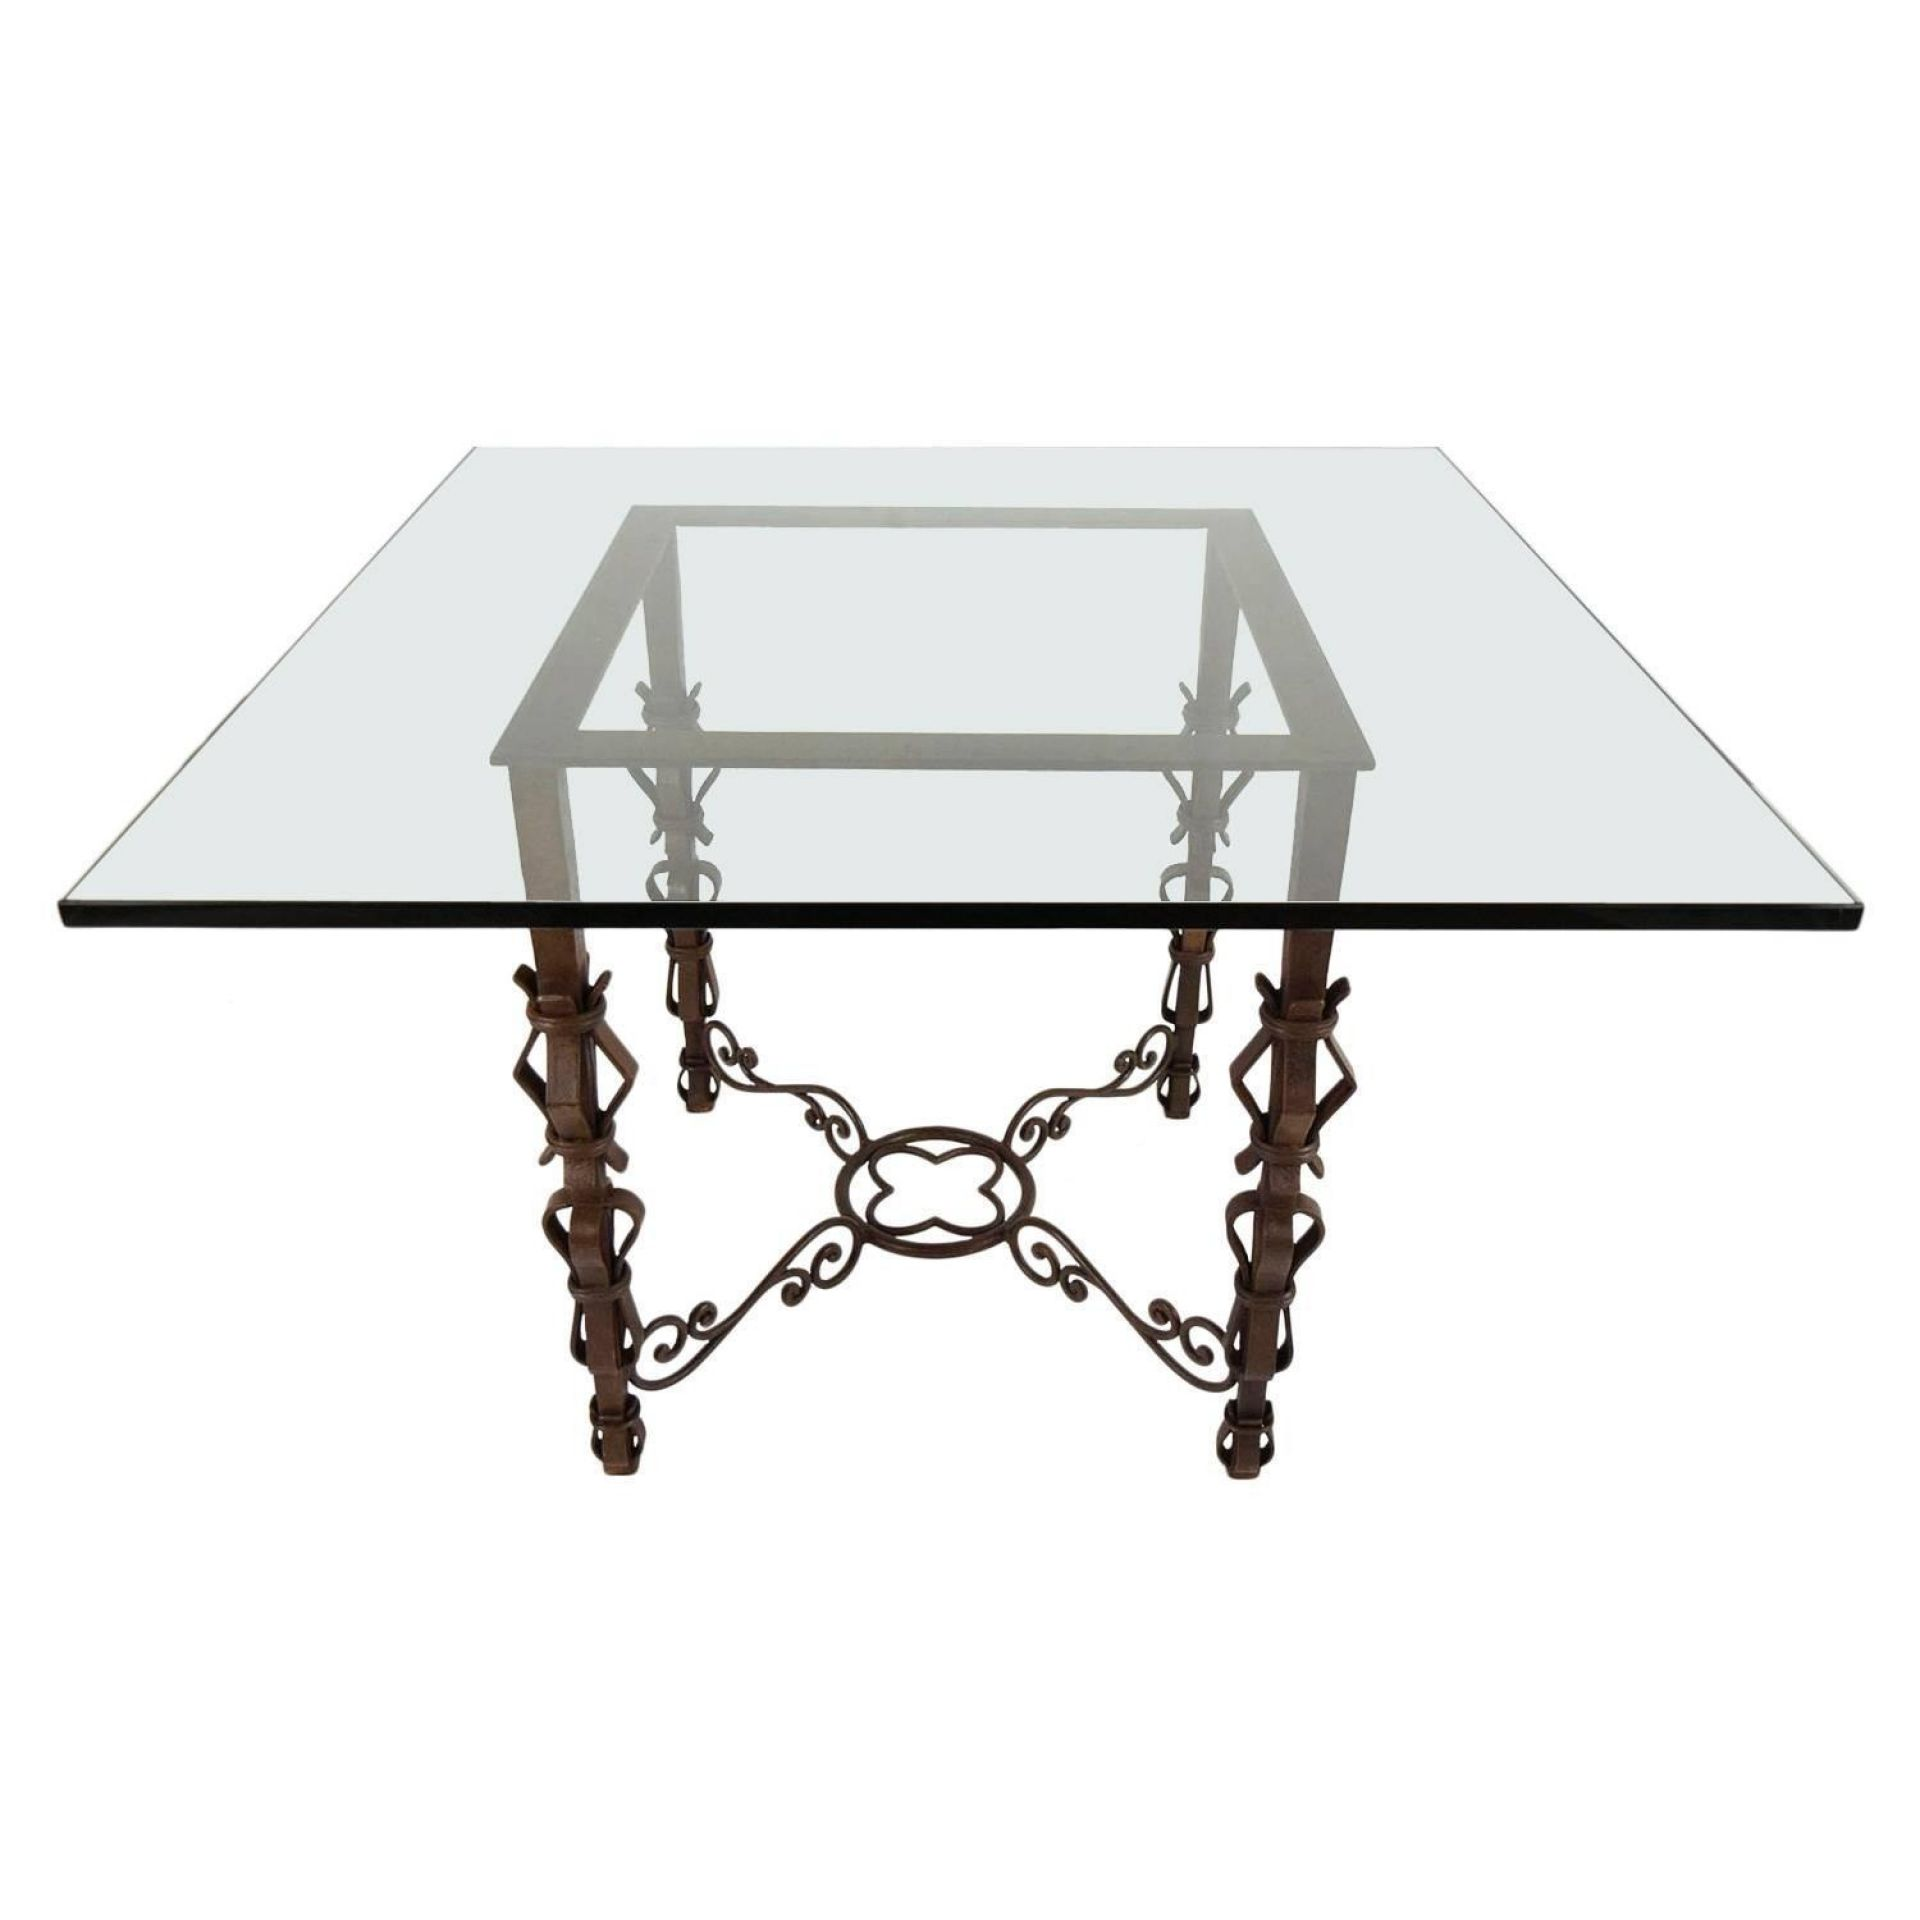 Spanish-Style Square Glass Top Center Table with Iron Base